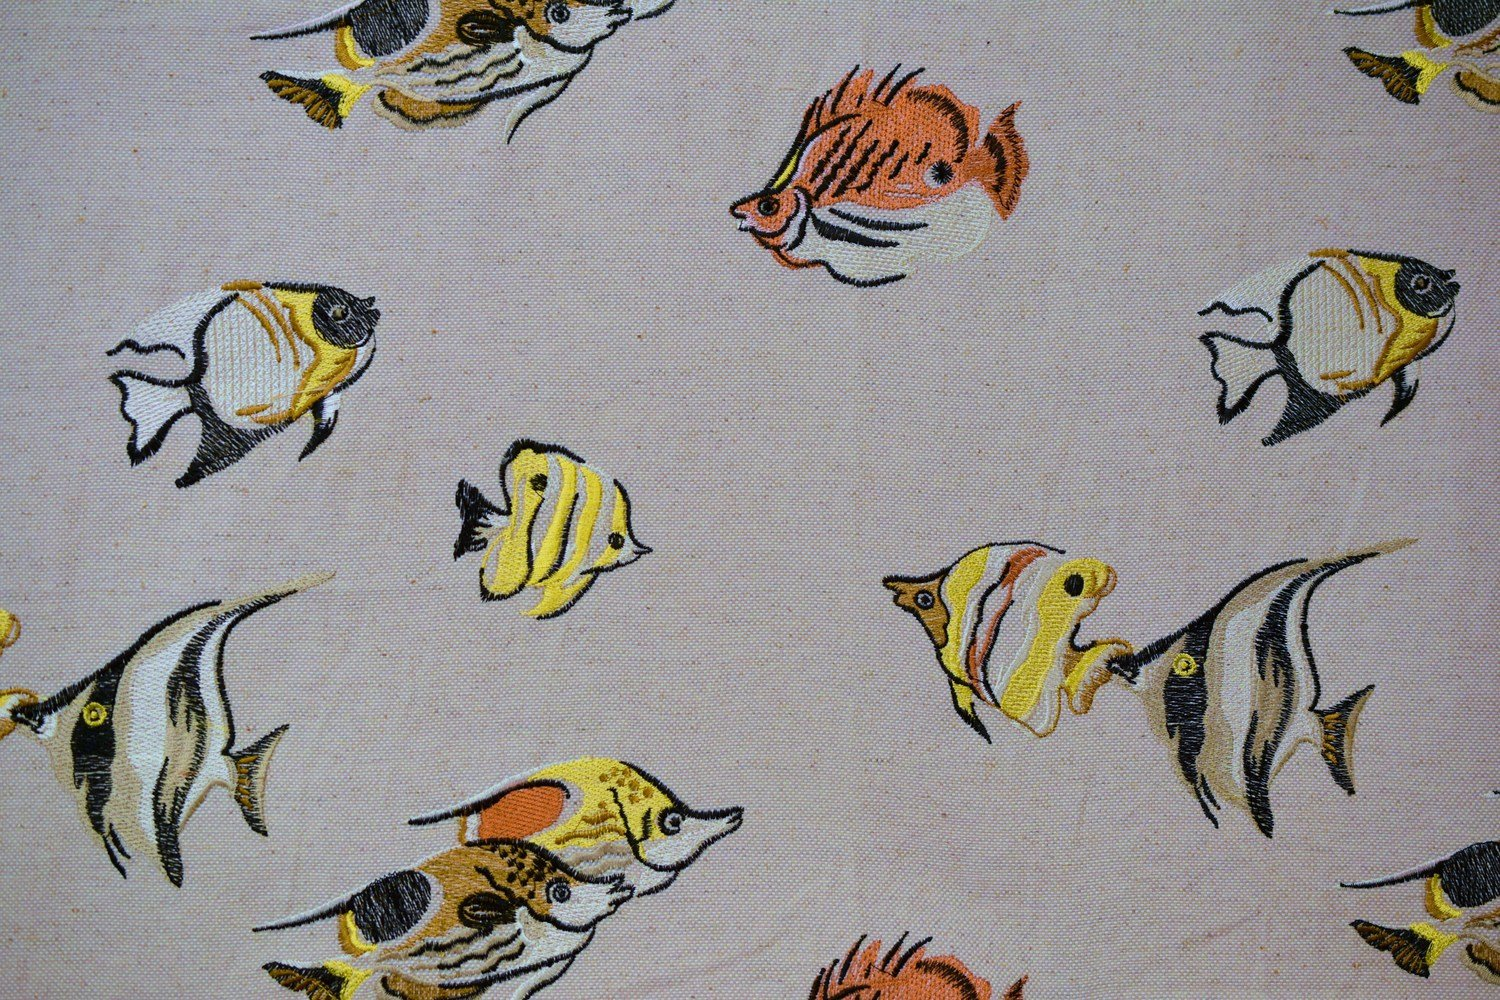 Fish One-Multi Embroidery